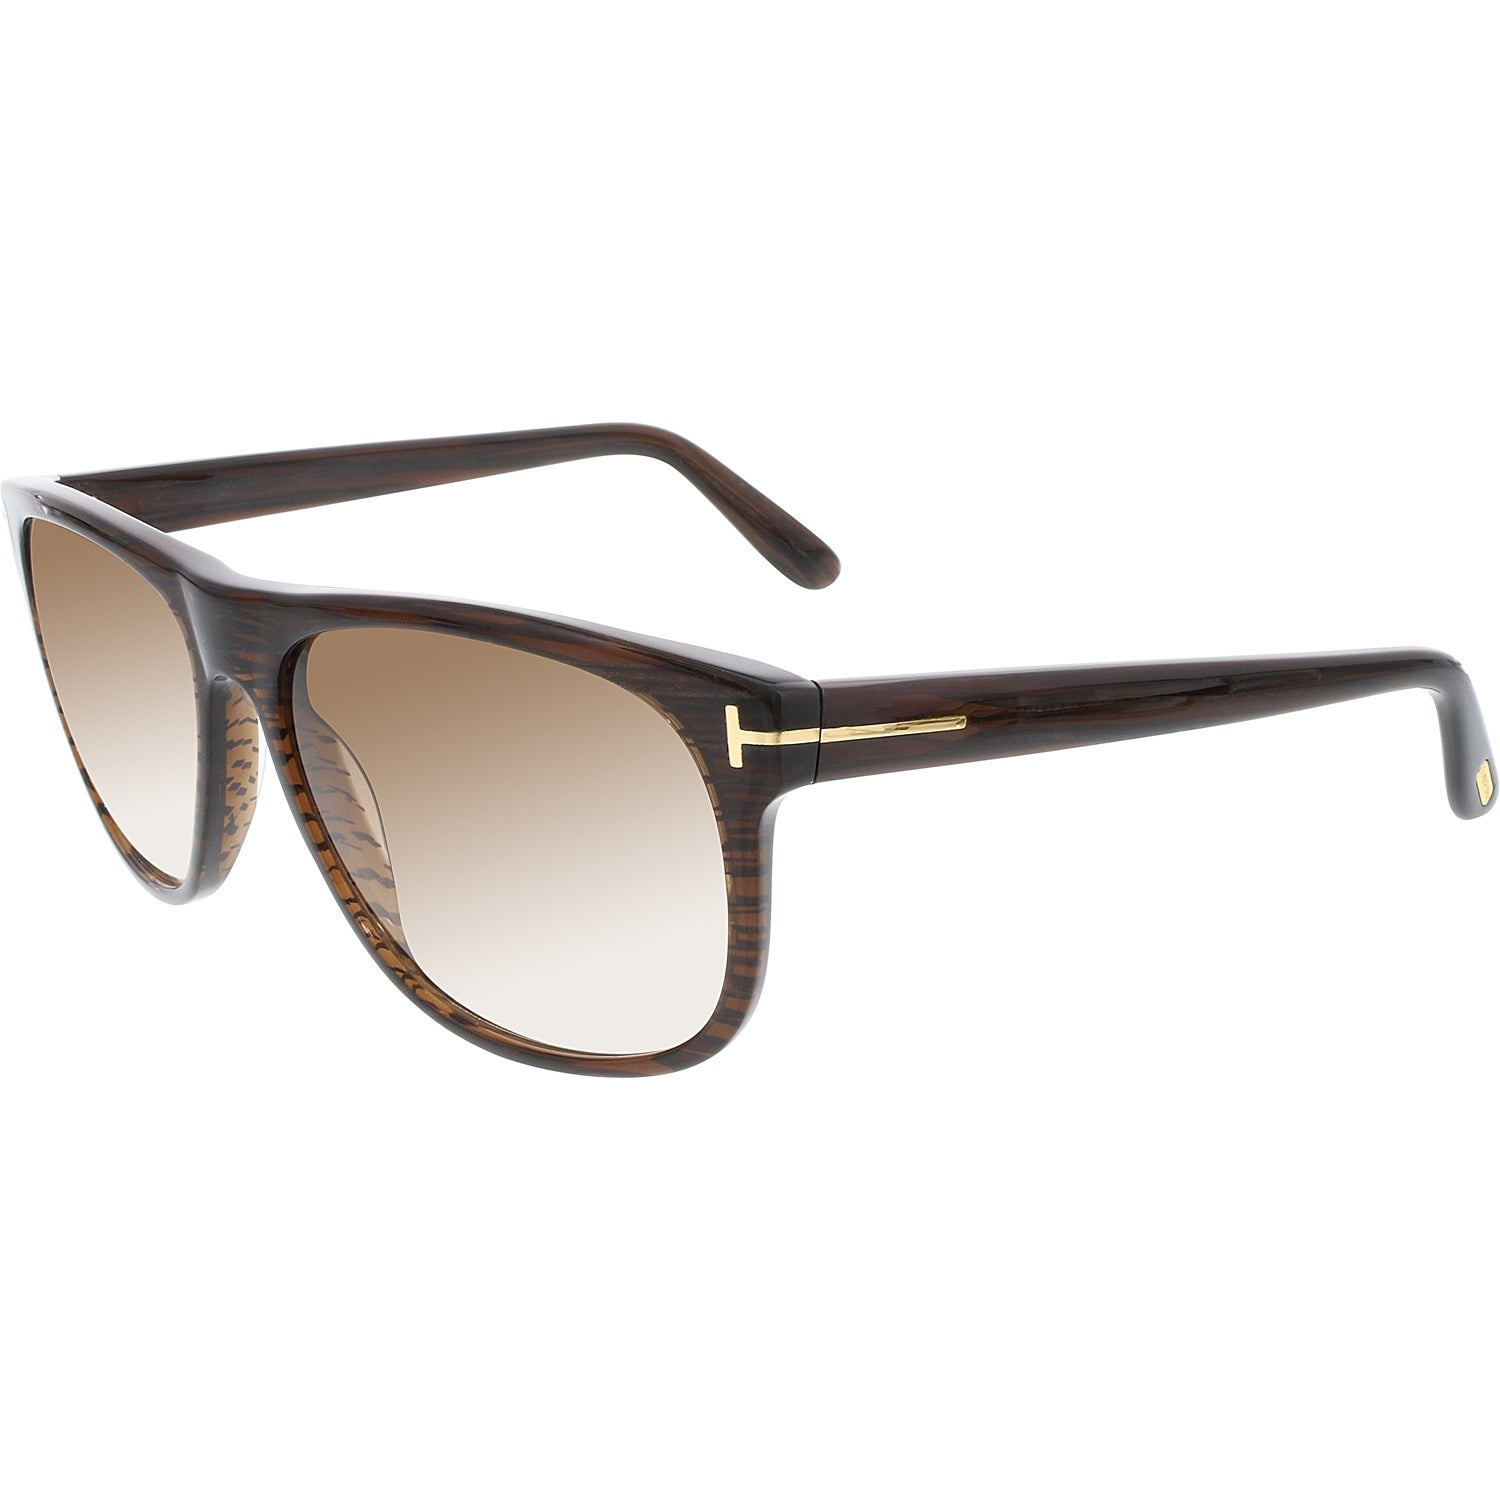 cab699c63d4 Shop Tom Ford Men s Olivier FT0236-50P-58 Brown Square Sunglasses - Free  Shipping Today - Overstock.com - 18901406